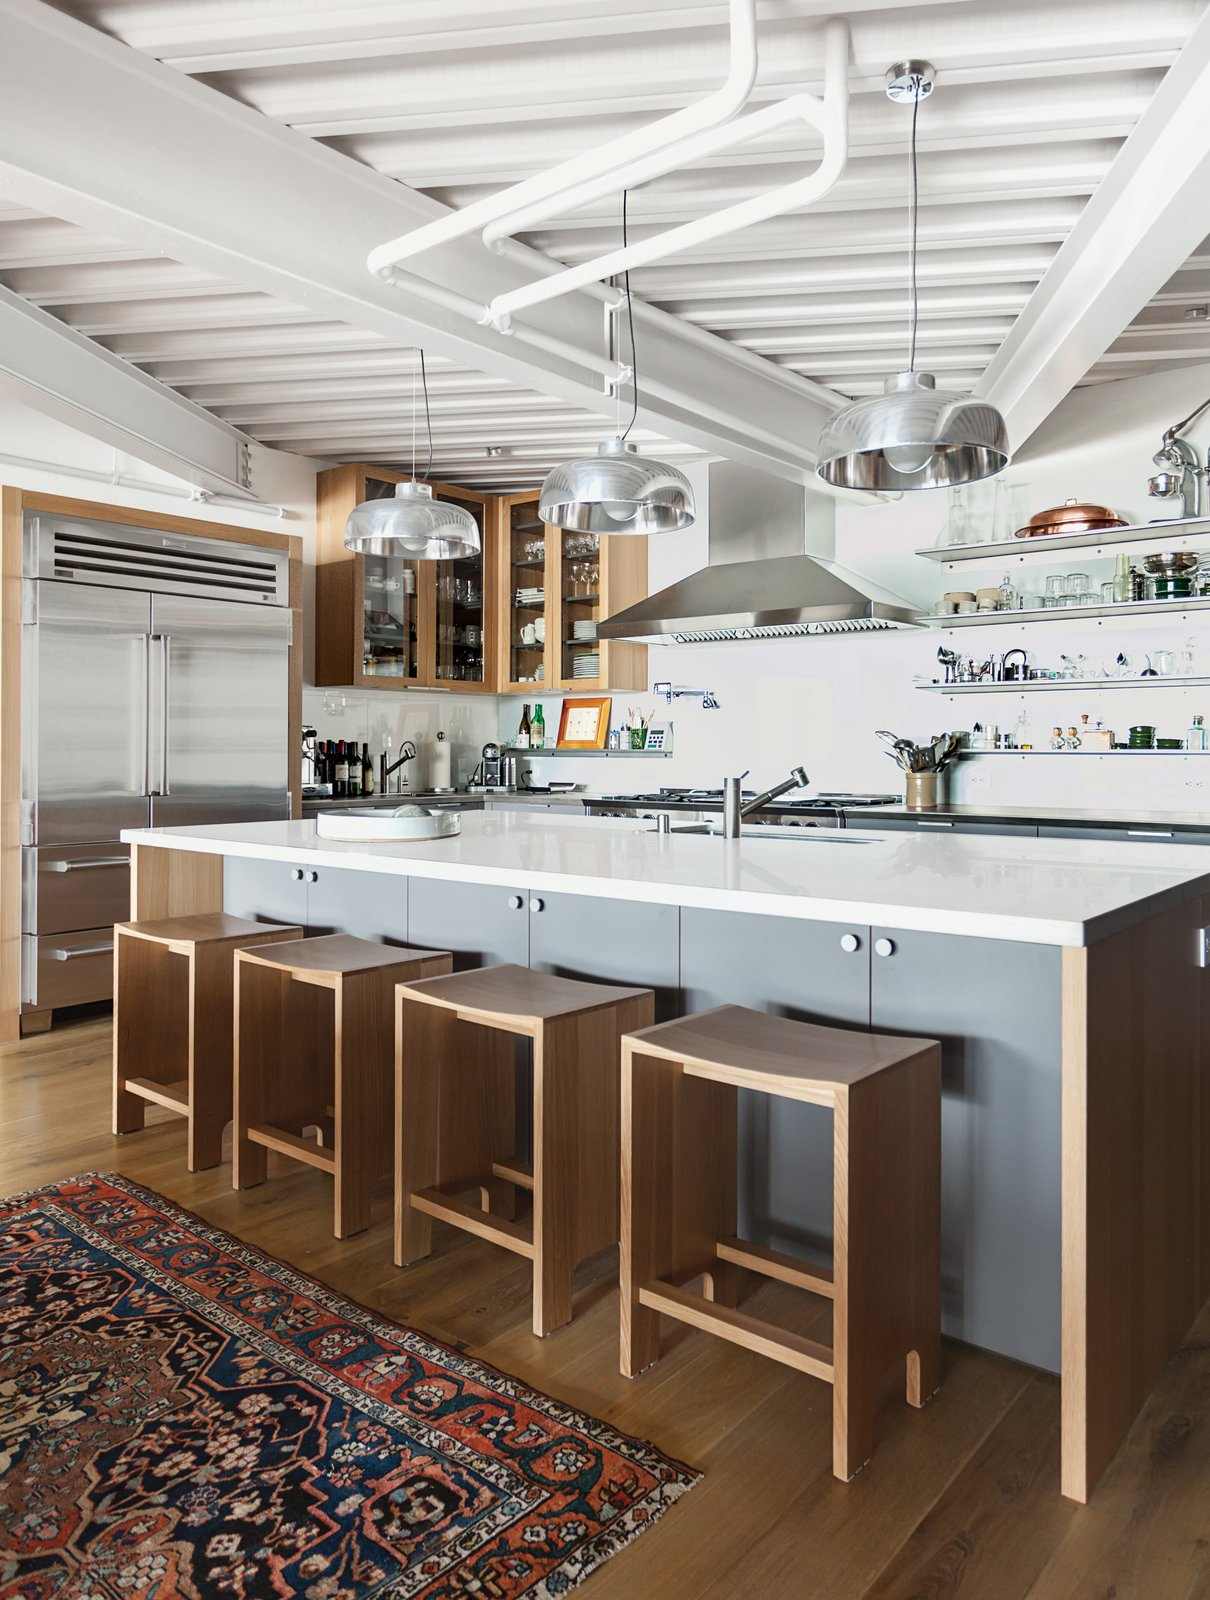 White also dominates the kicthen, also by Henrybuilt, with accents of stainless steel and wood.